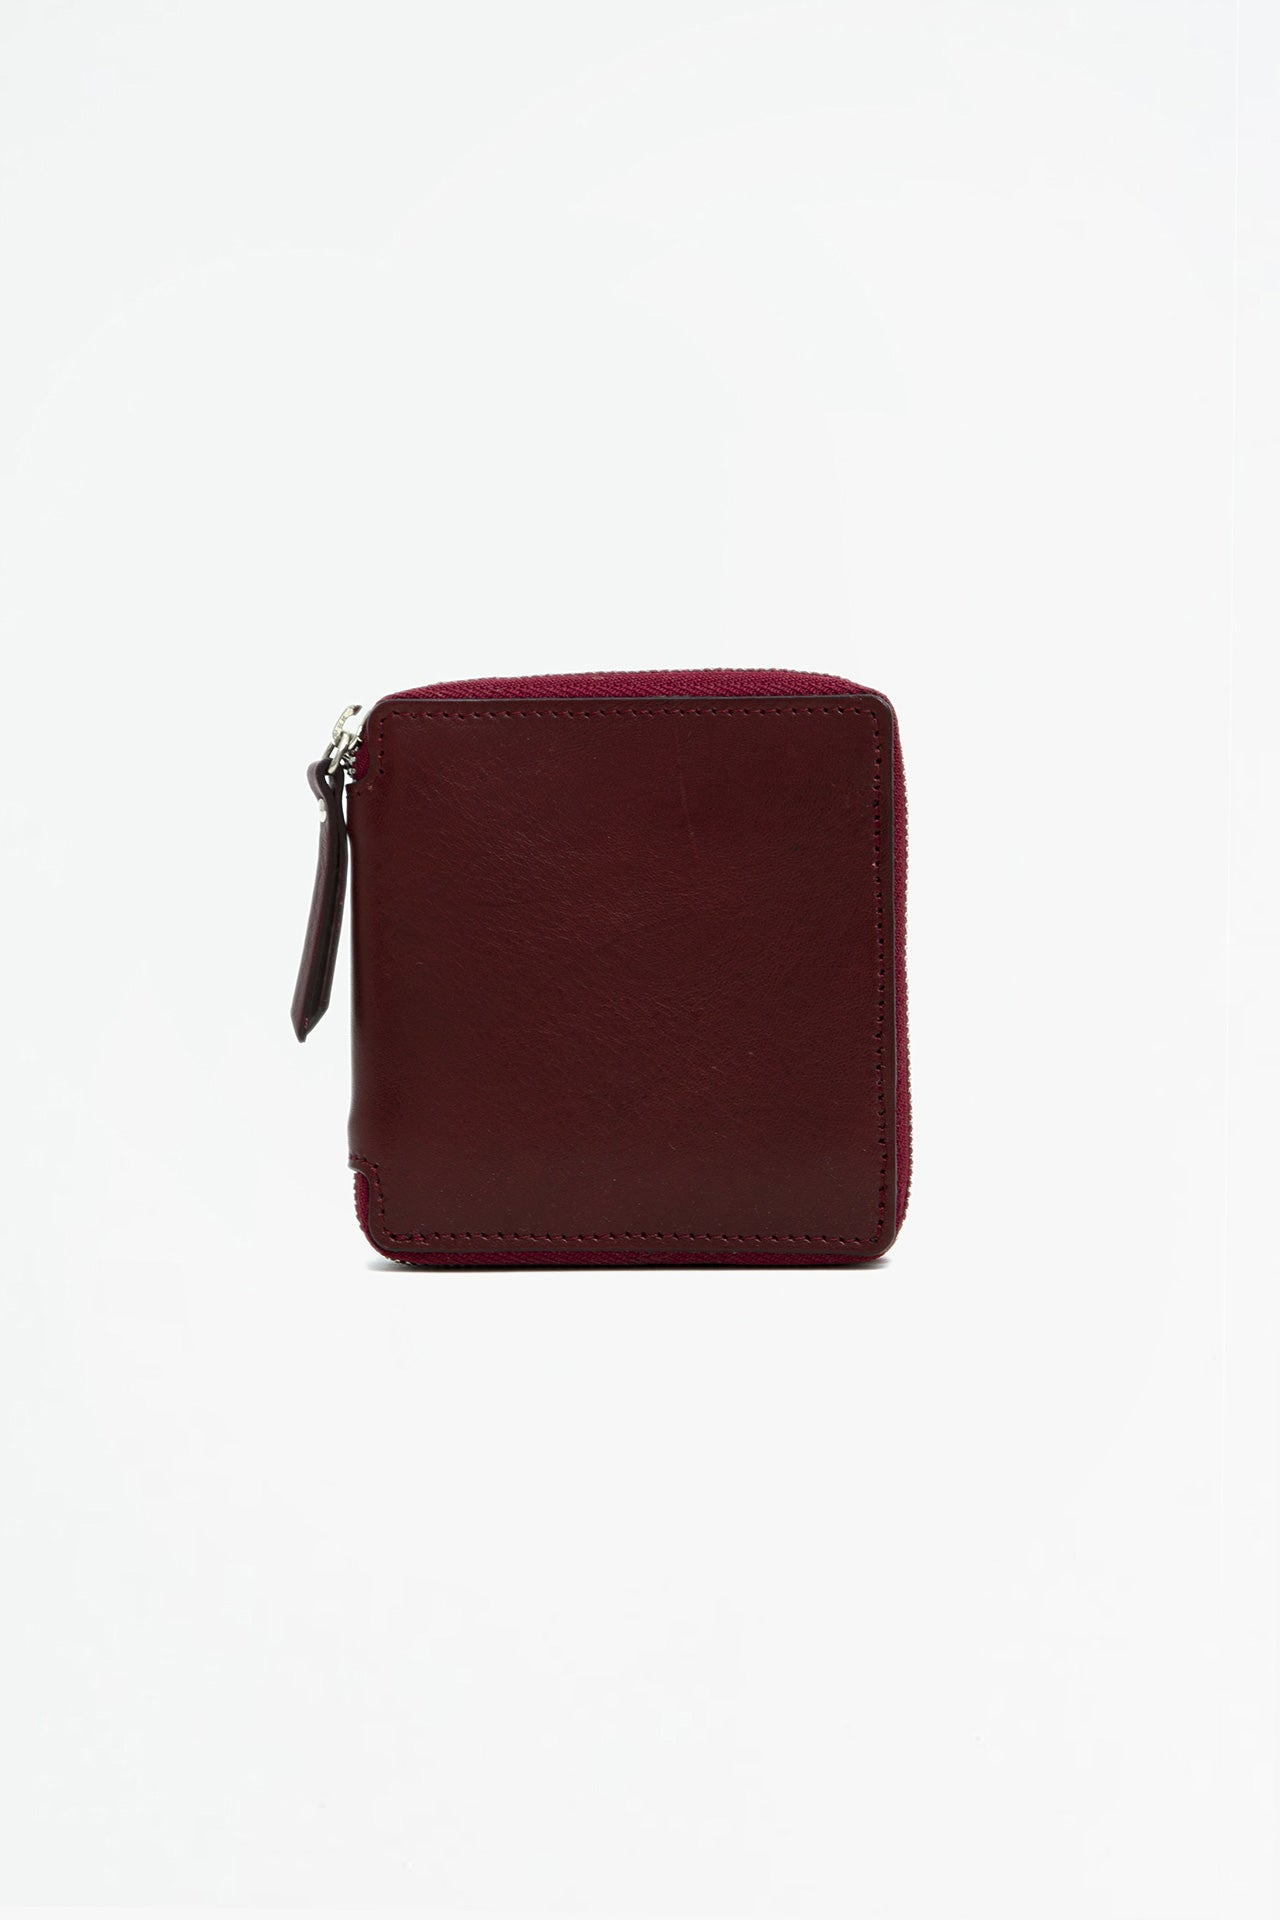 Big zipped wallet burgundy